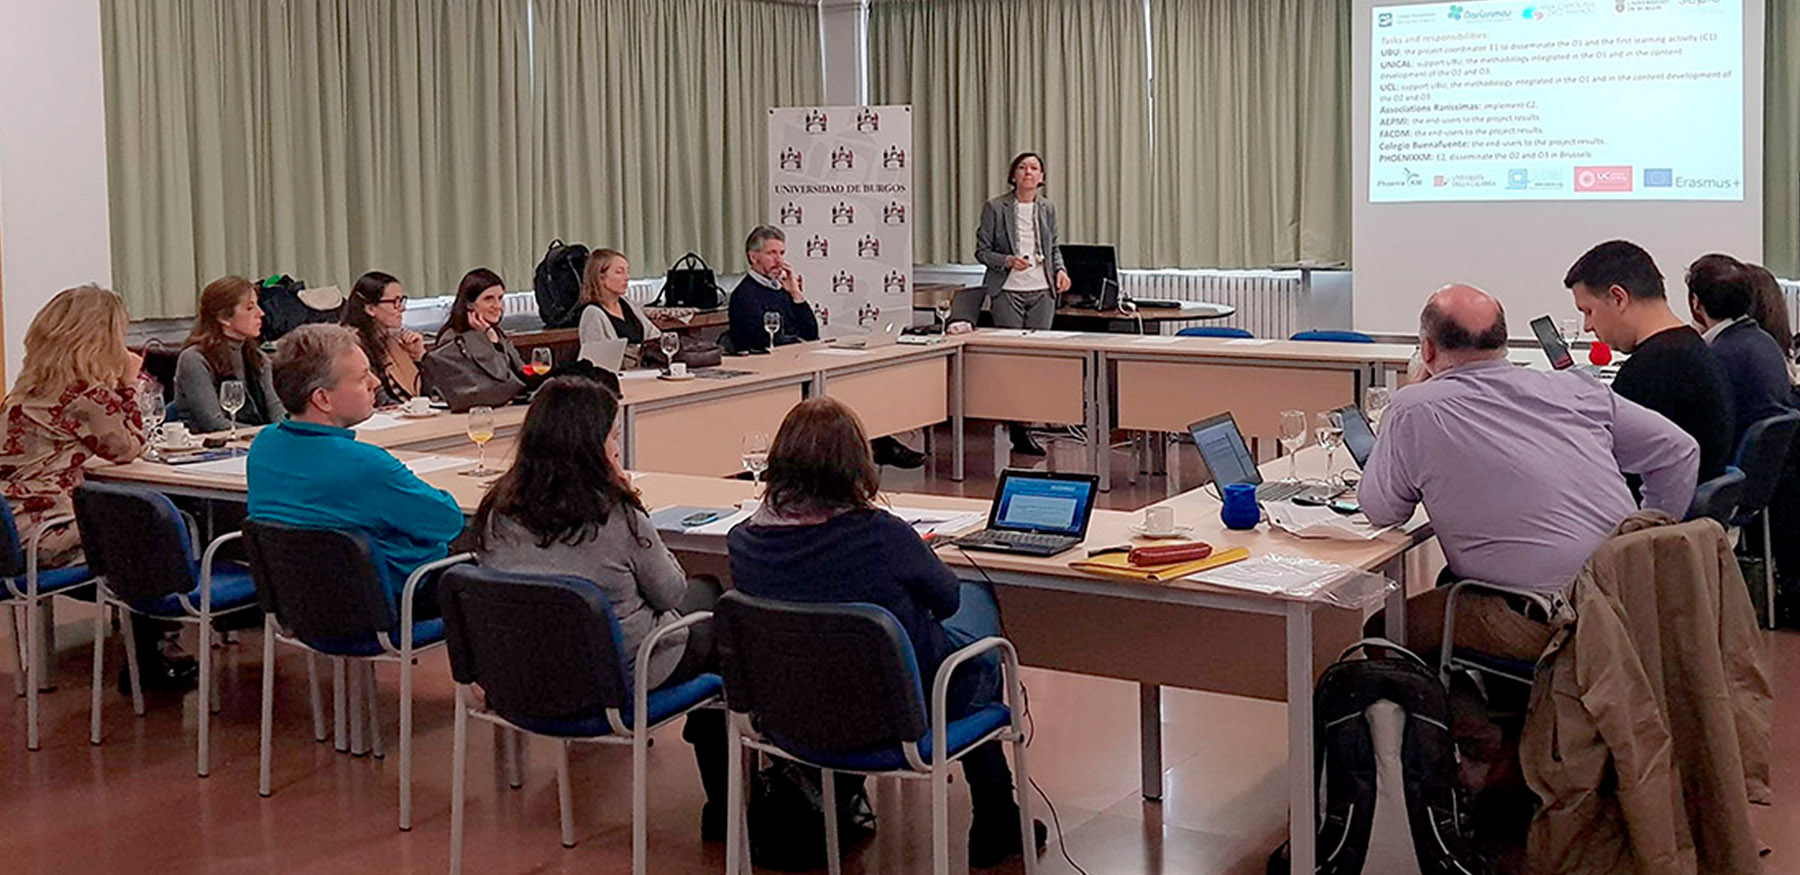 Kickoff Meeting, Burgos. 11-2018 - Presentation